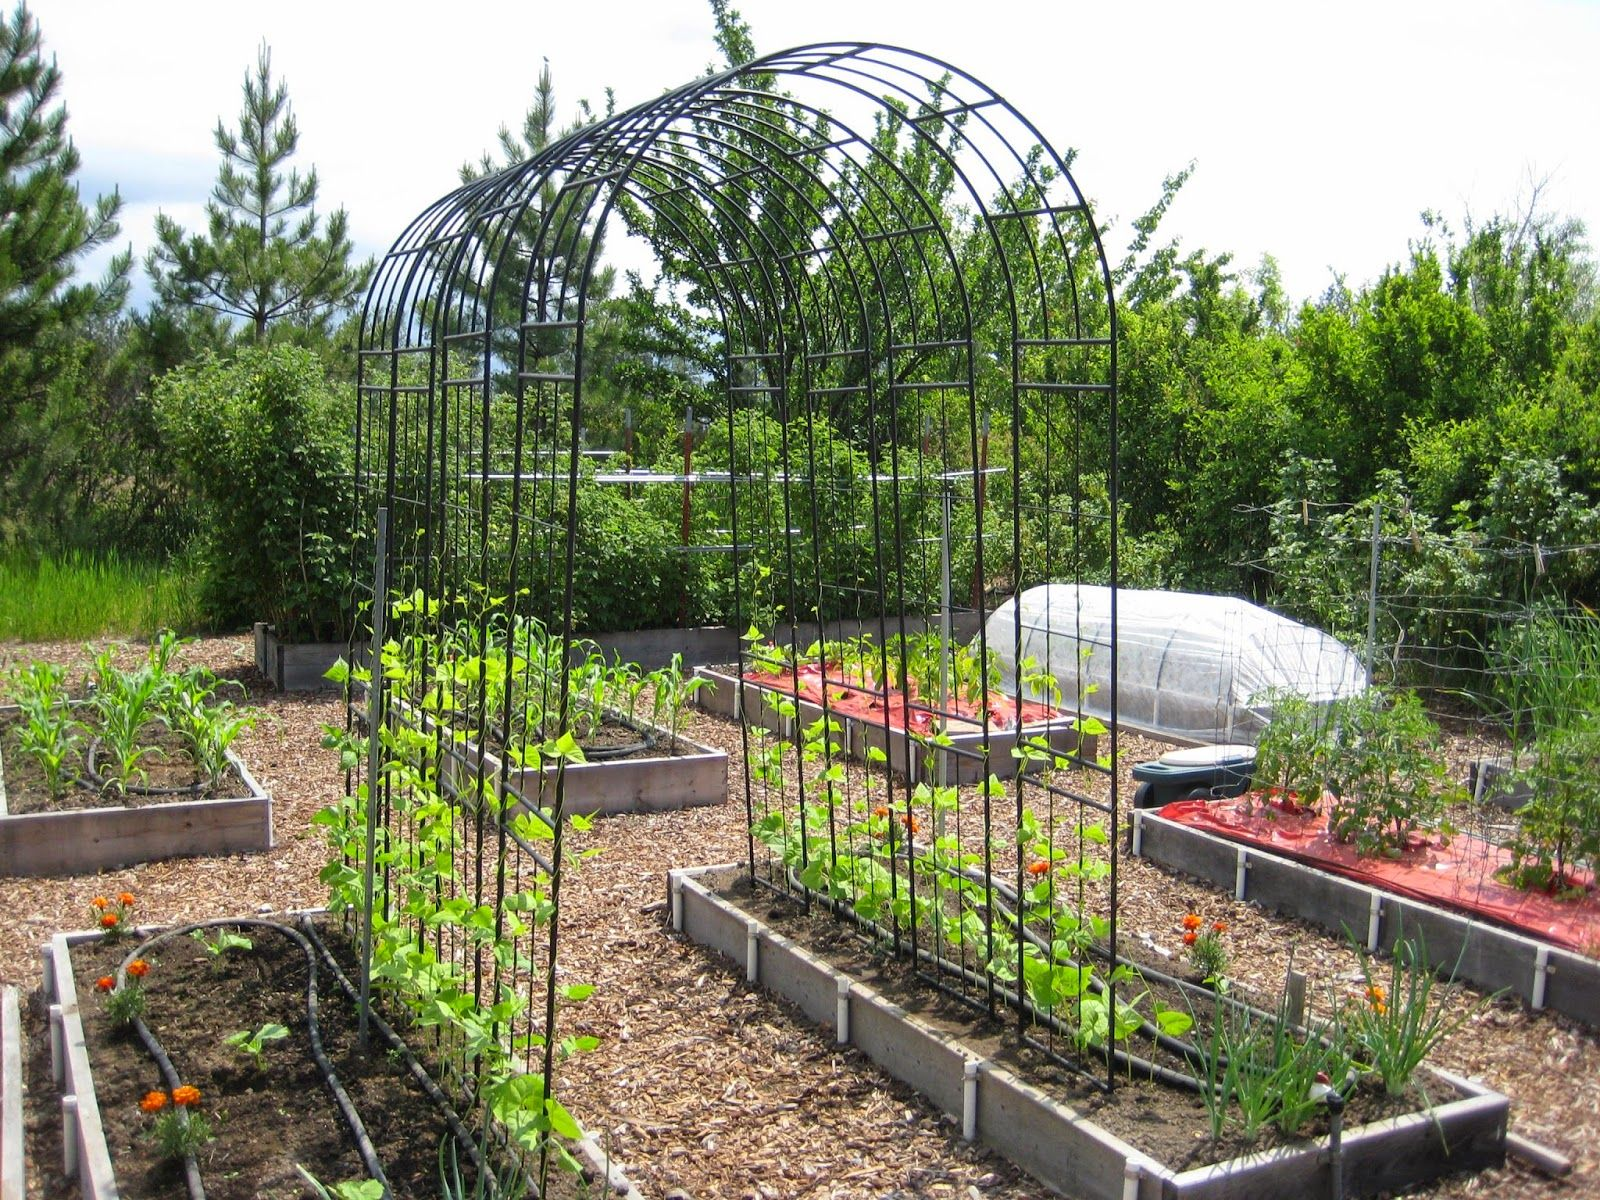 Beautiful Pole Bean Trellis Ideas Part - 13: Susanu0027s In The Garden: Pole Bean Trellis Idea - Black Steel Arbors